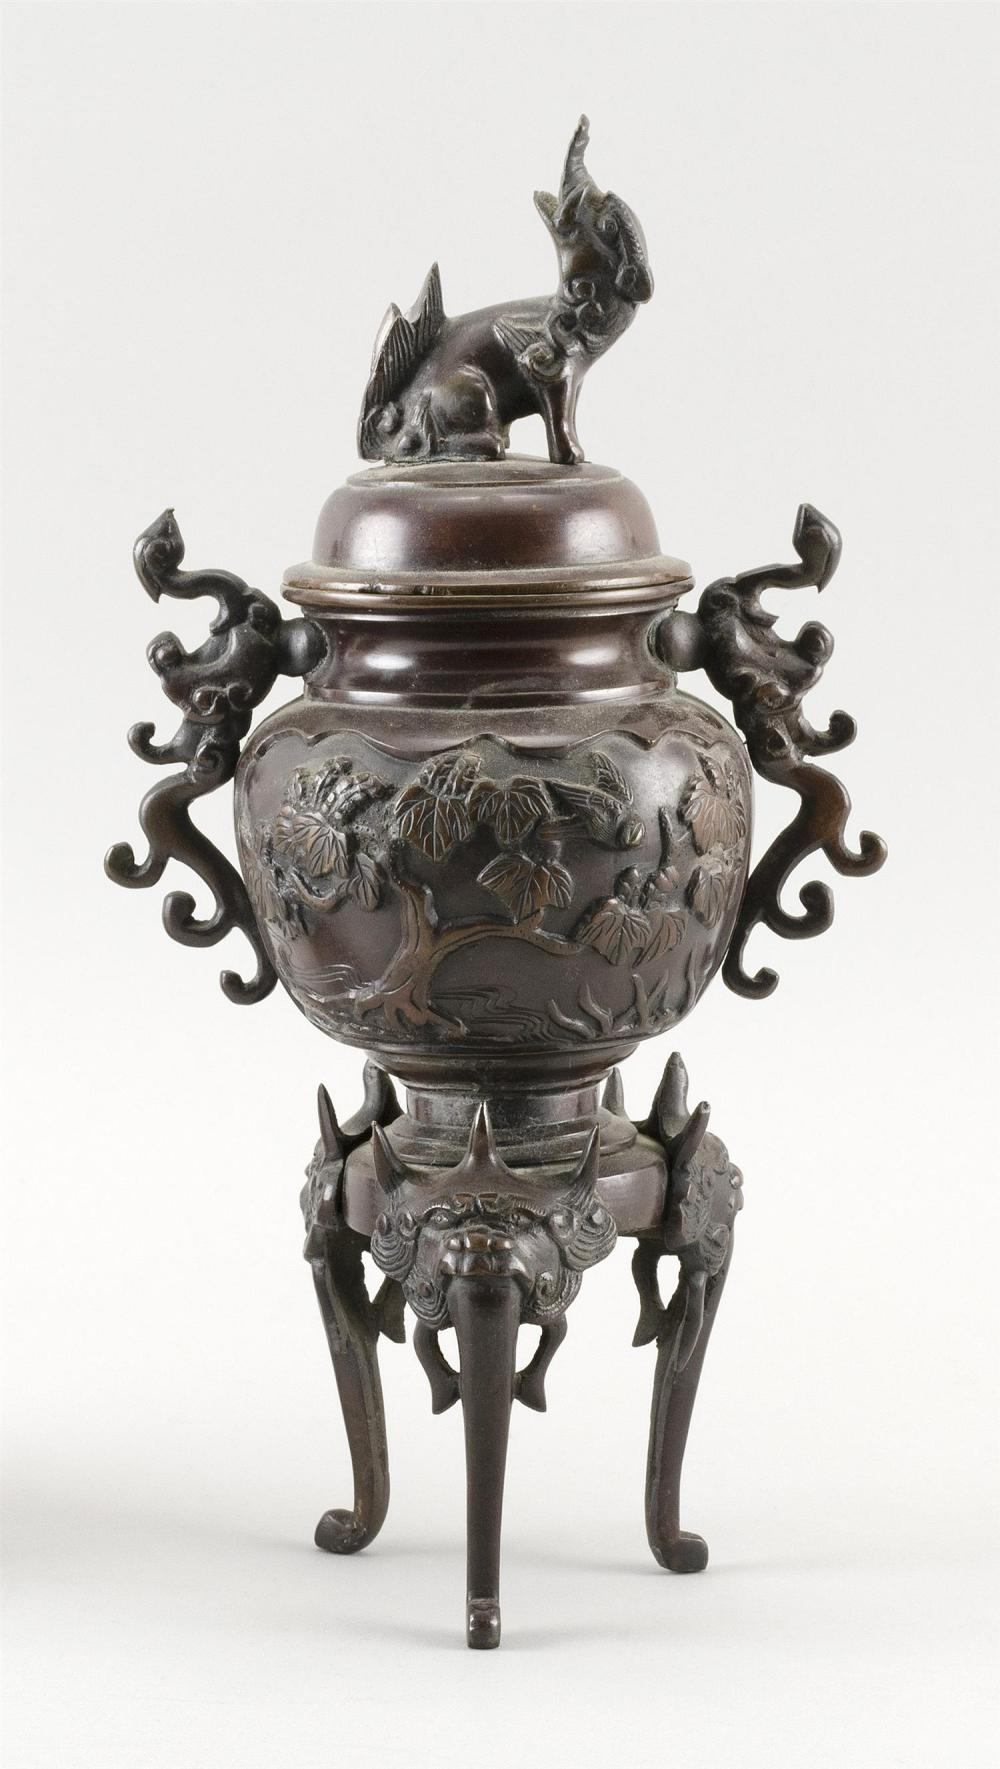 JAPANESE BRONZE INCENSE BURNER In urn form with three legs. Foo dog finial on cover. Height 11